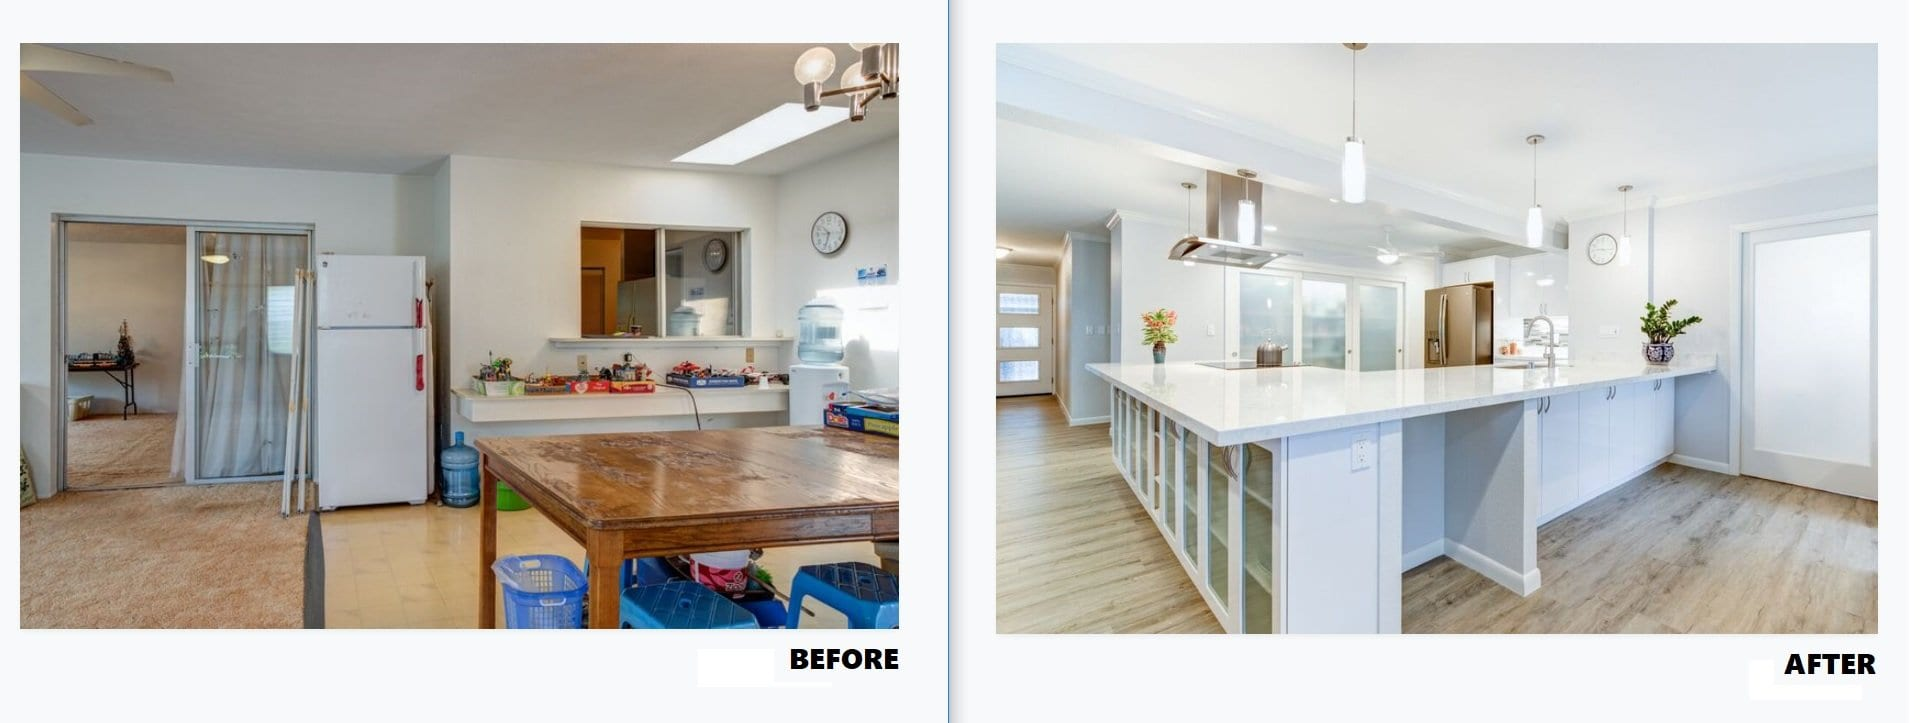 Mililani Makeover Before & After 1